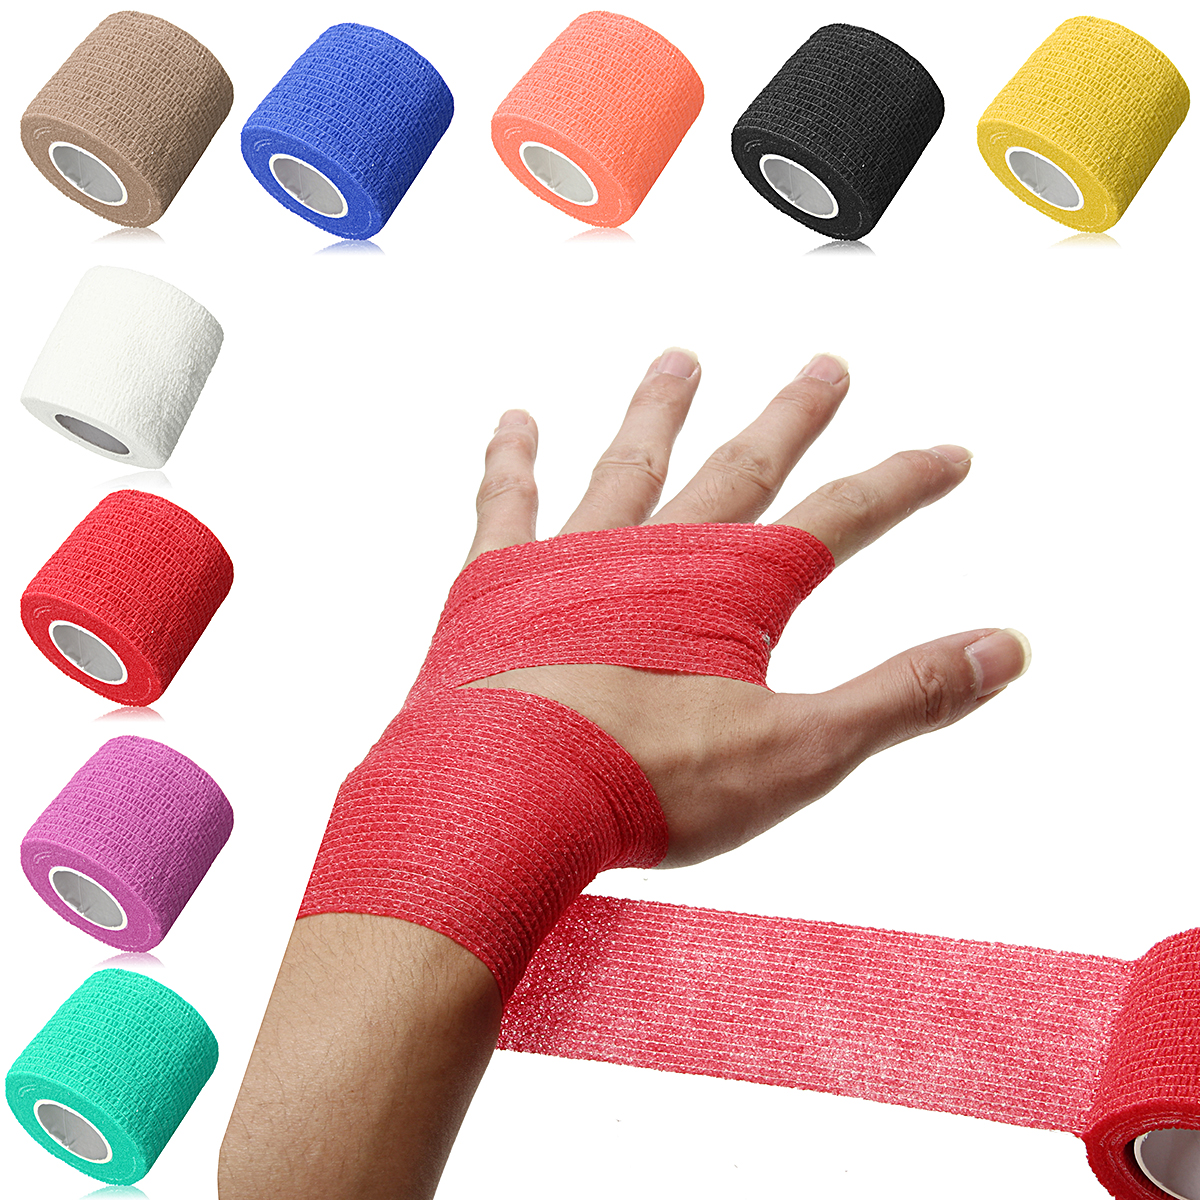 Water Resistant Sports Athletic Tape - Waterproof Physical Therapy Tape First Aid Medical Health Care Flexible Strong Elastic Cohesive Bandage Wrap Gauze Tape